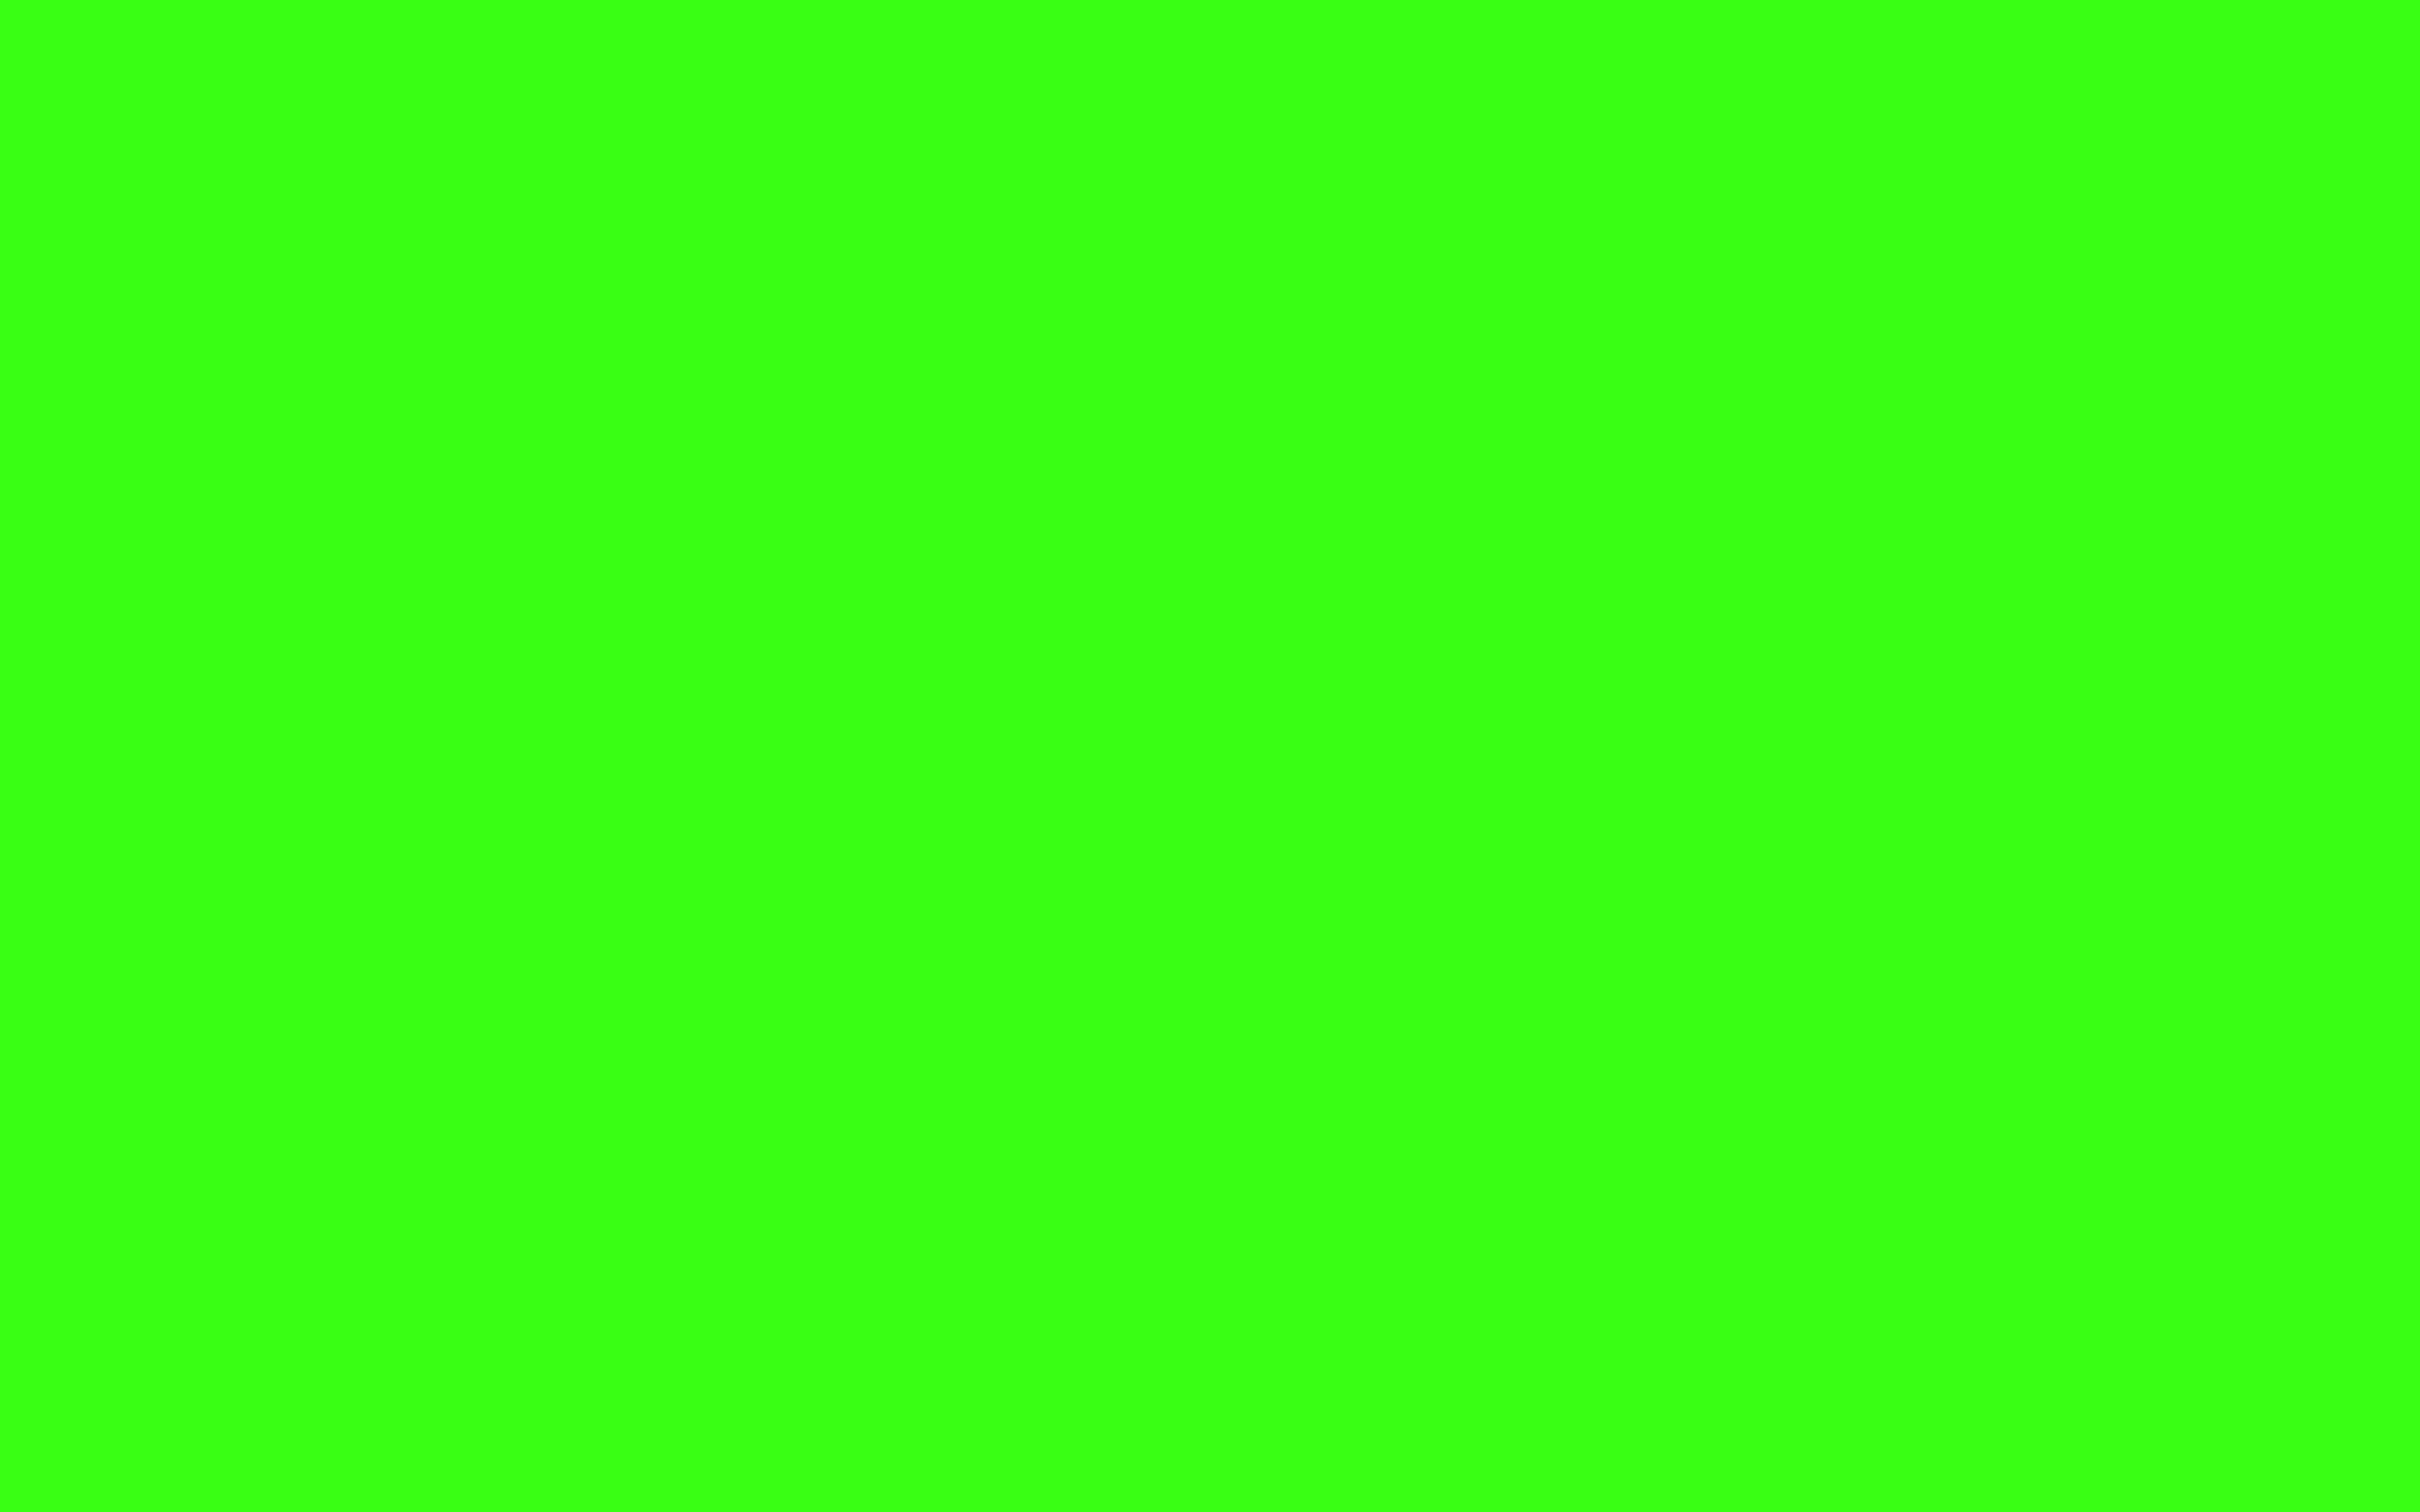 2560x1600 Bright Green Solid Color Background |Bright Green Color Background